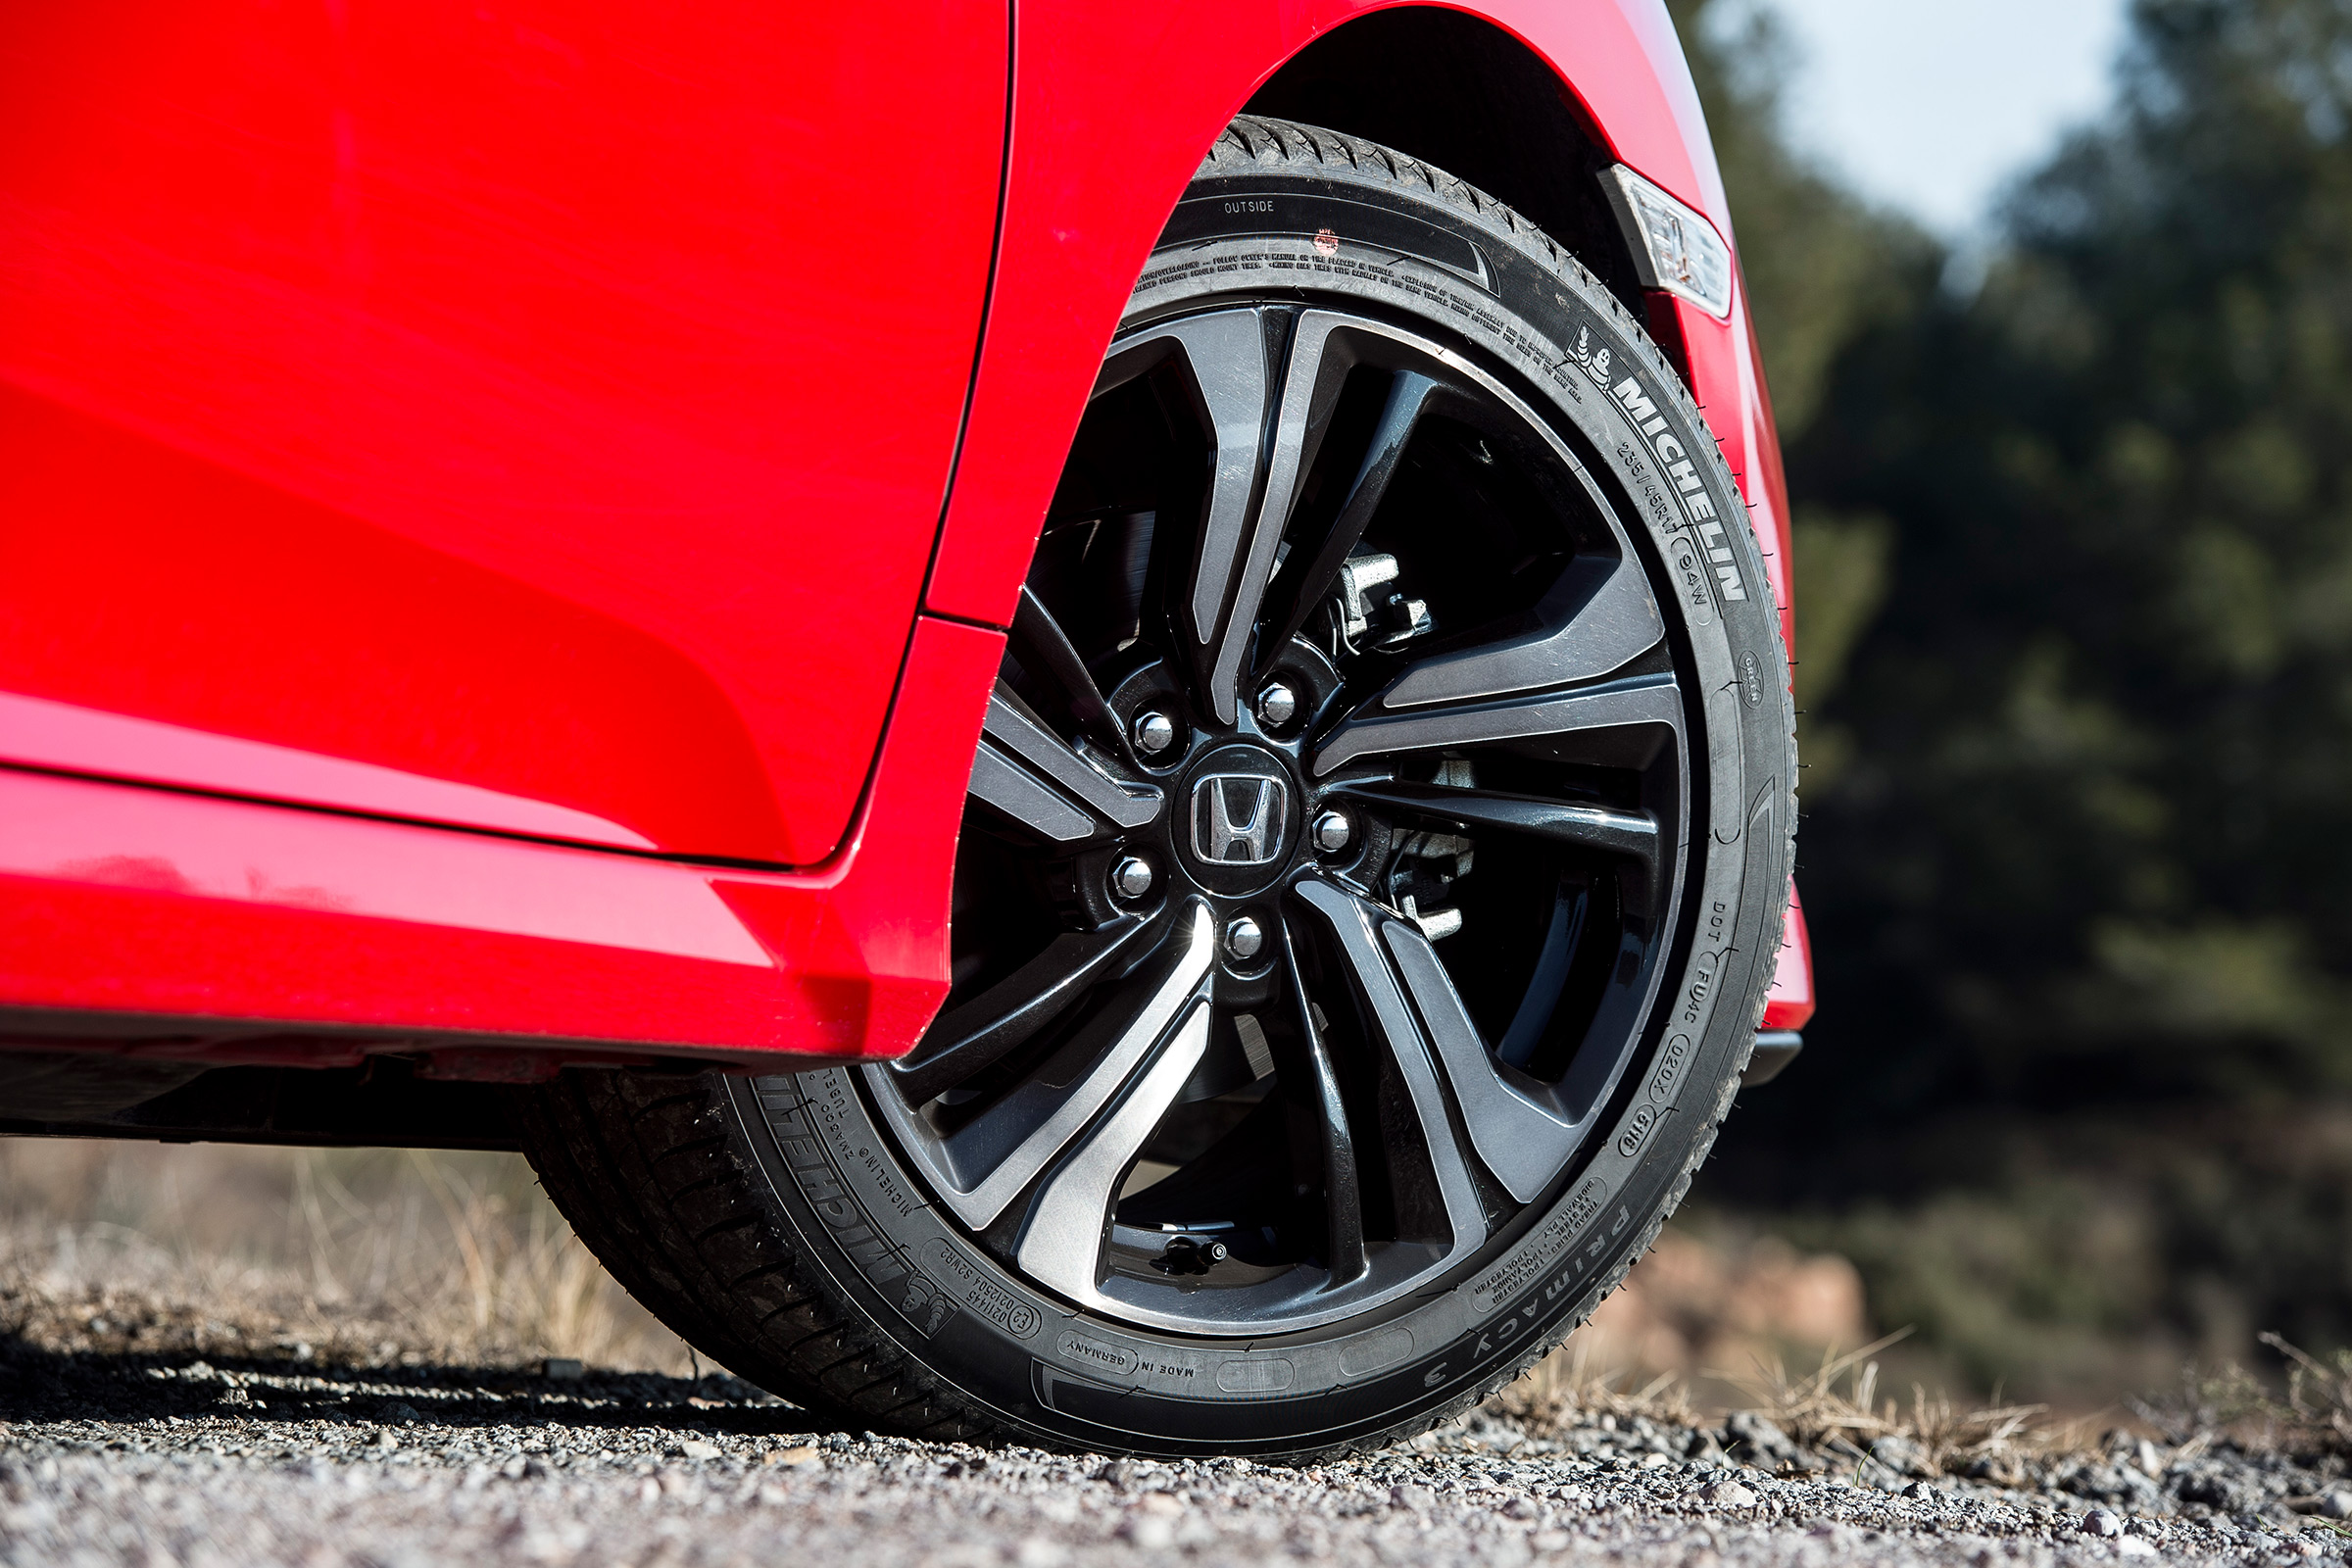 2017 Honda Civic Hatchback Red Exterior View Wheel Trim (View 27 of 34)